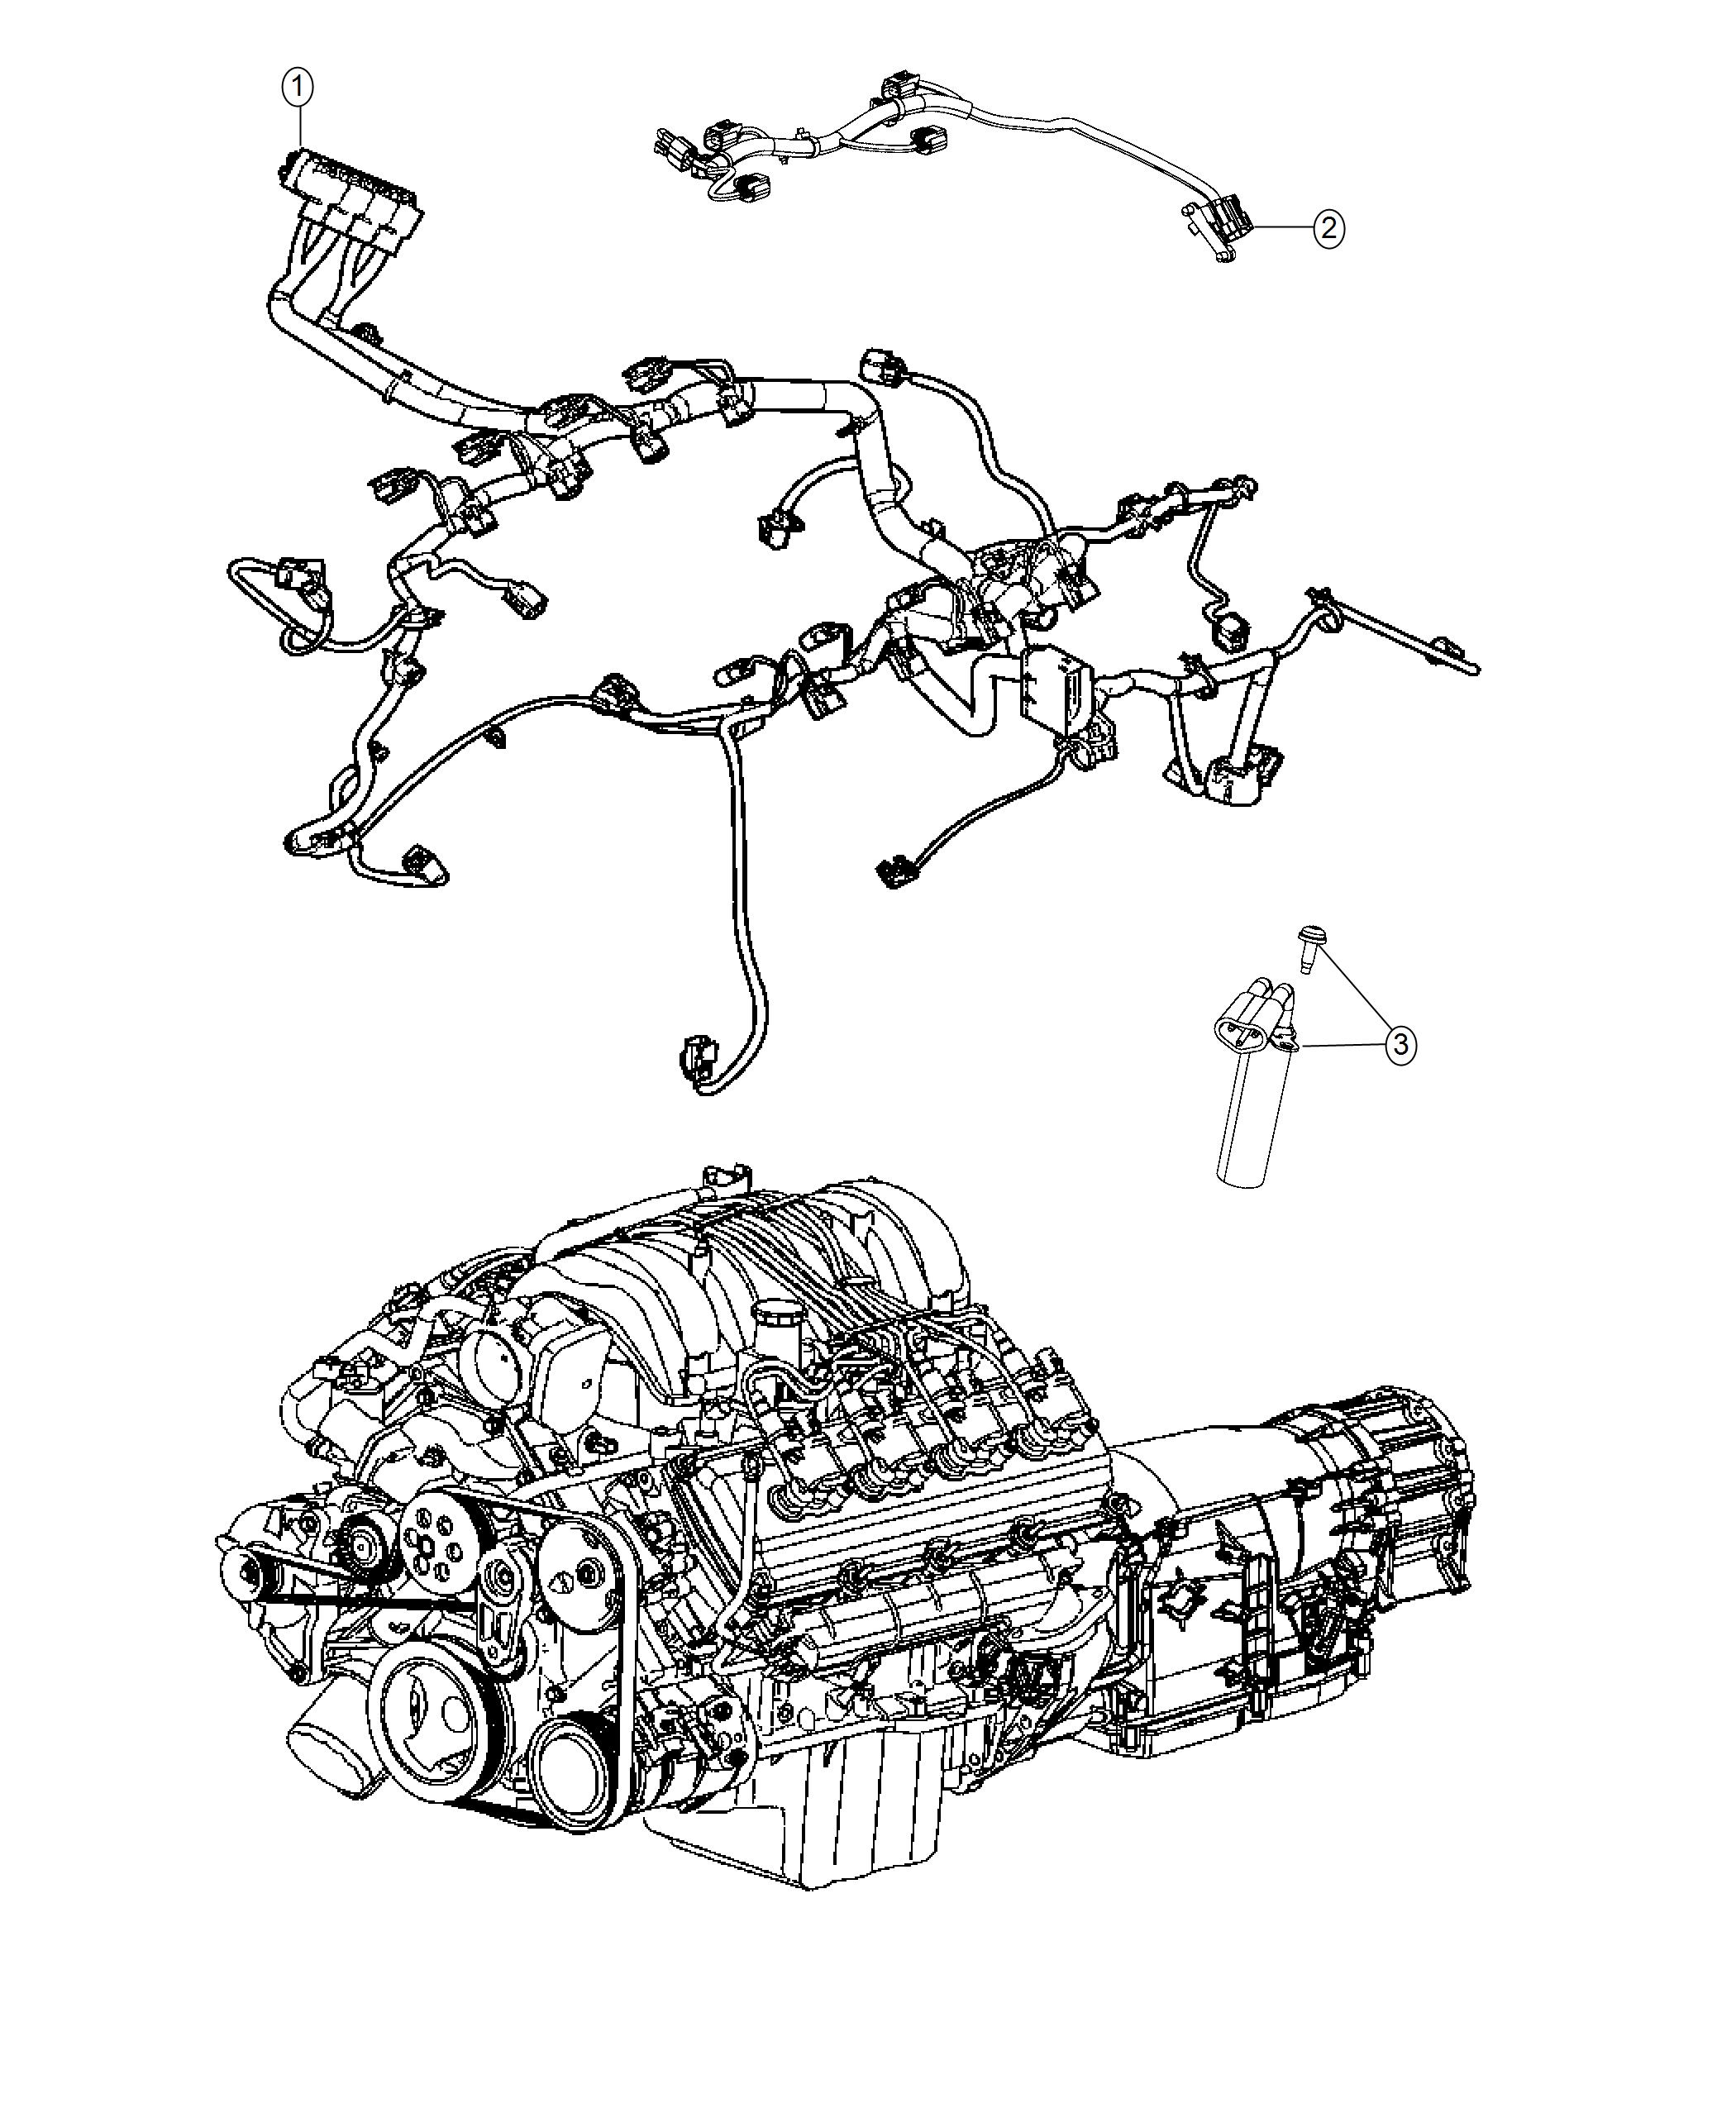 Jeep Grand Cherokee Wiring Engine Powertrain Heater